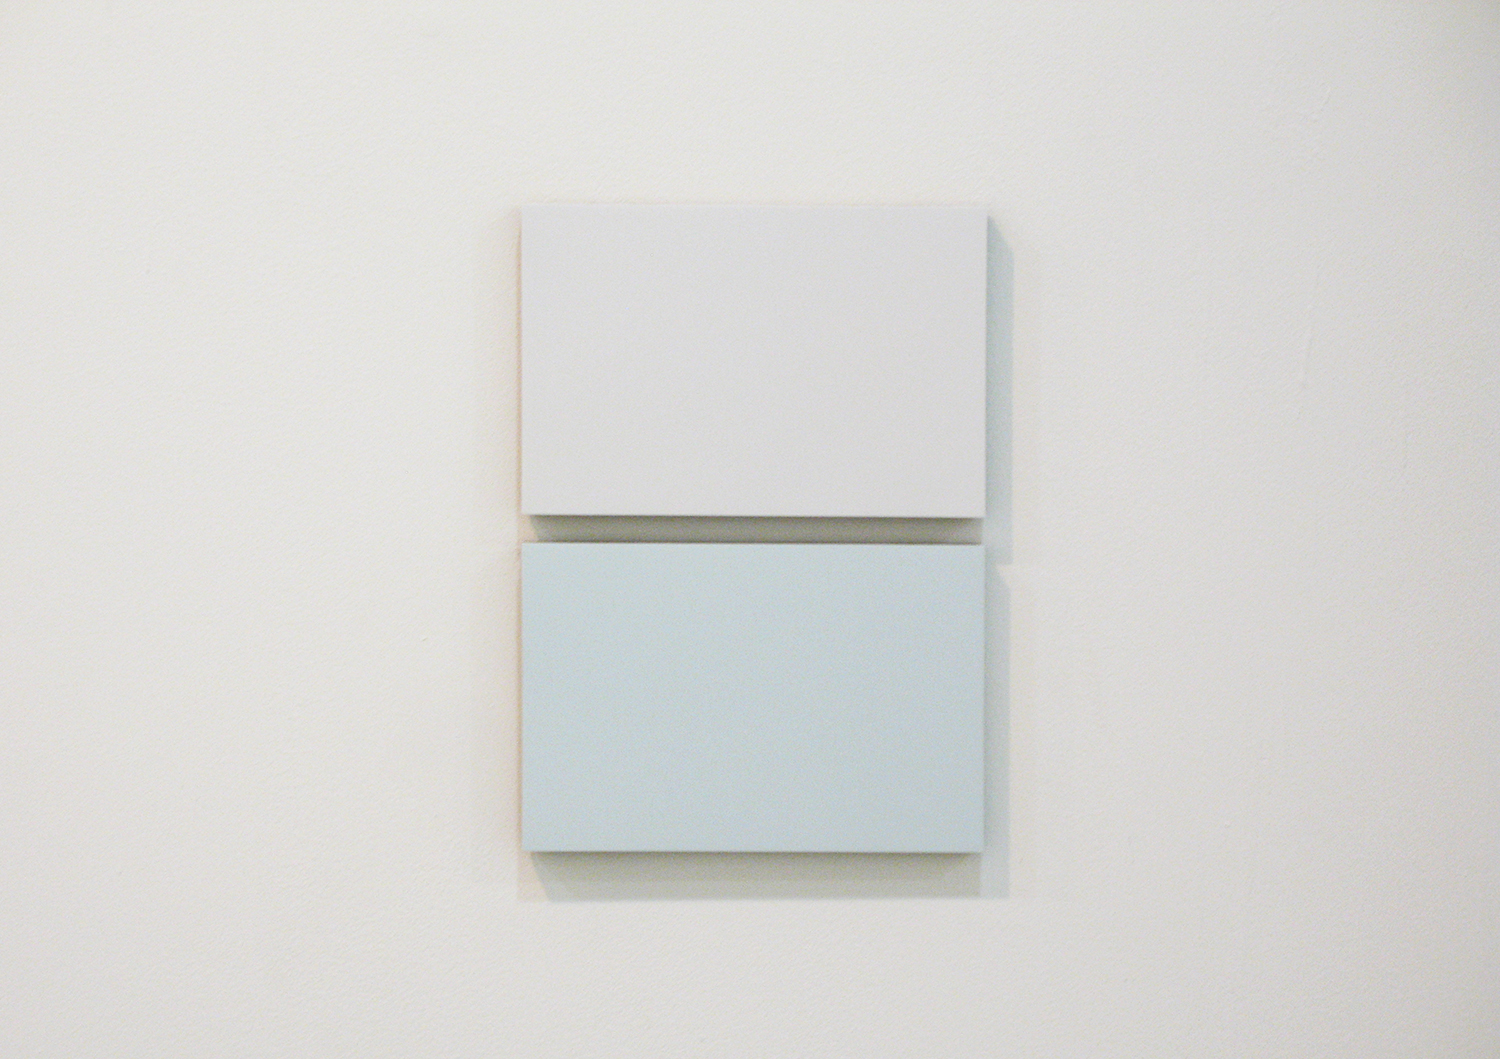 2col-09(gray & blue gray)casein, pigment on canvas & aluminum (2 parts, 10 x 15 cm each)